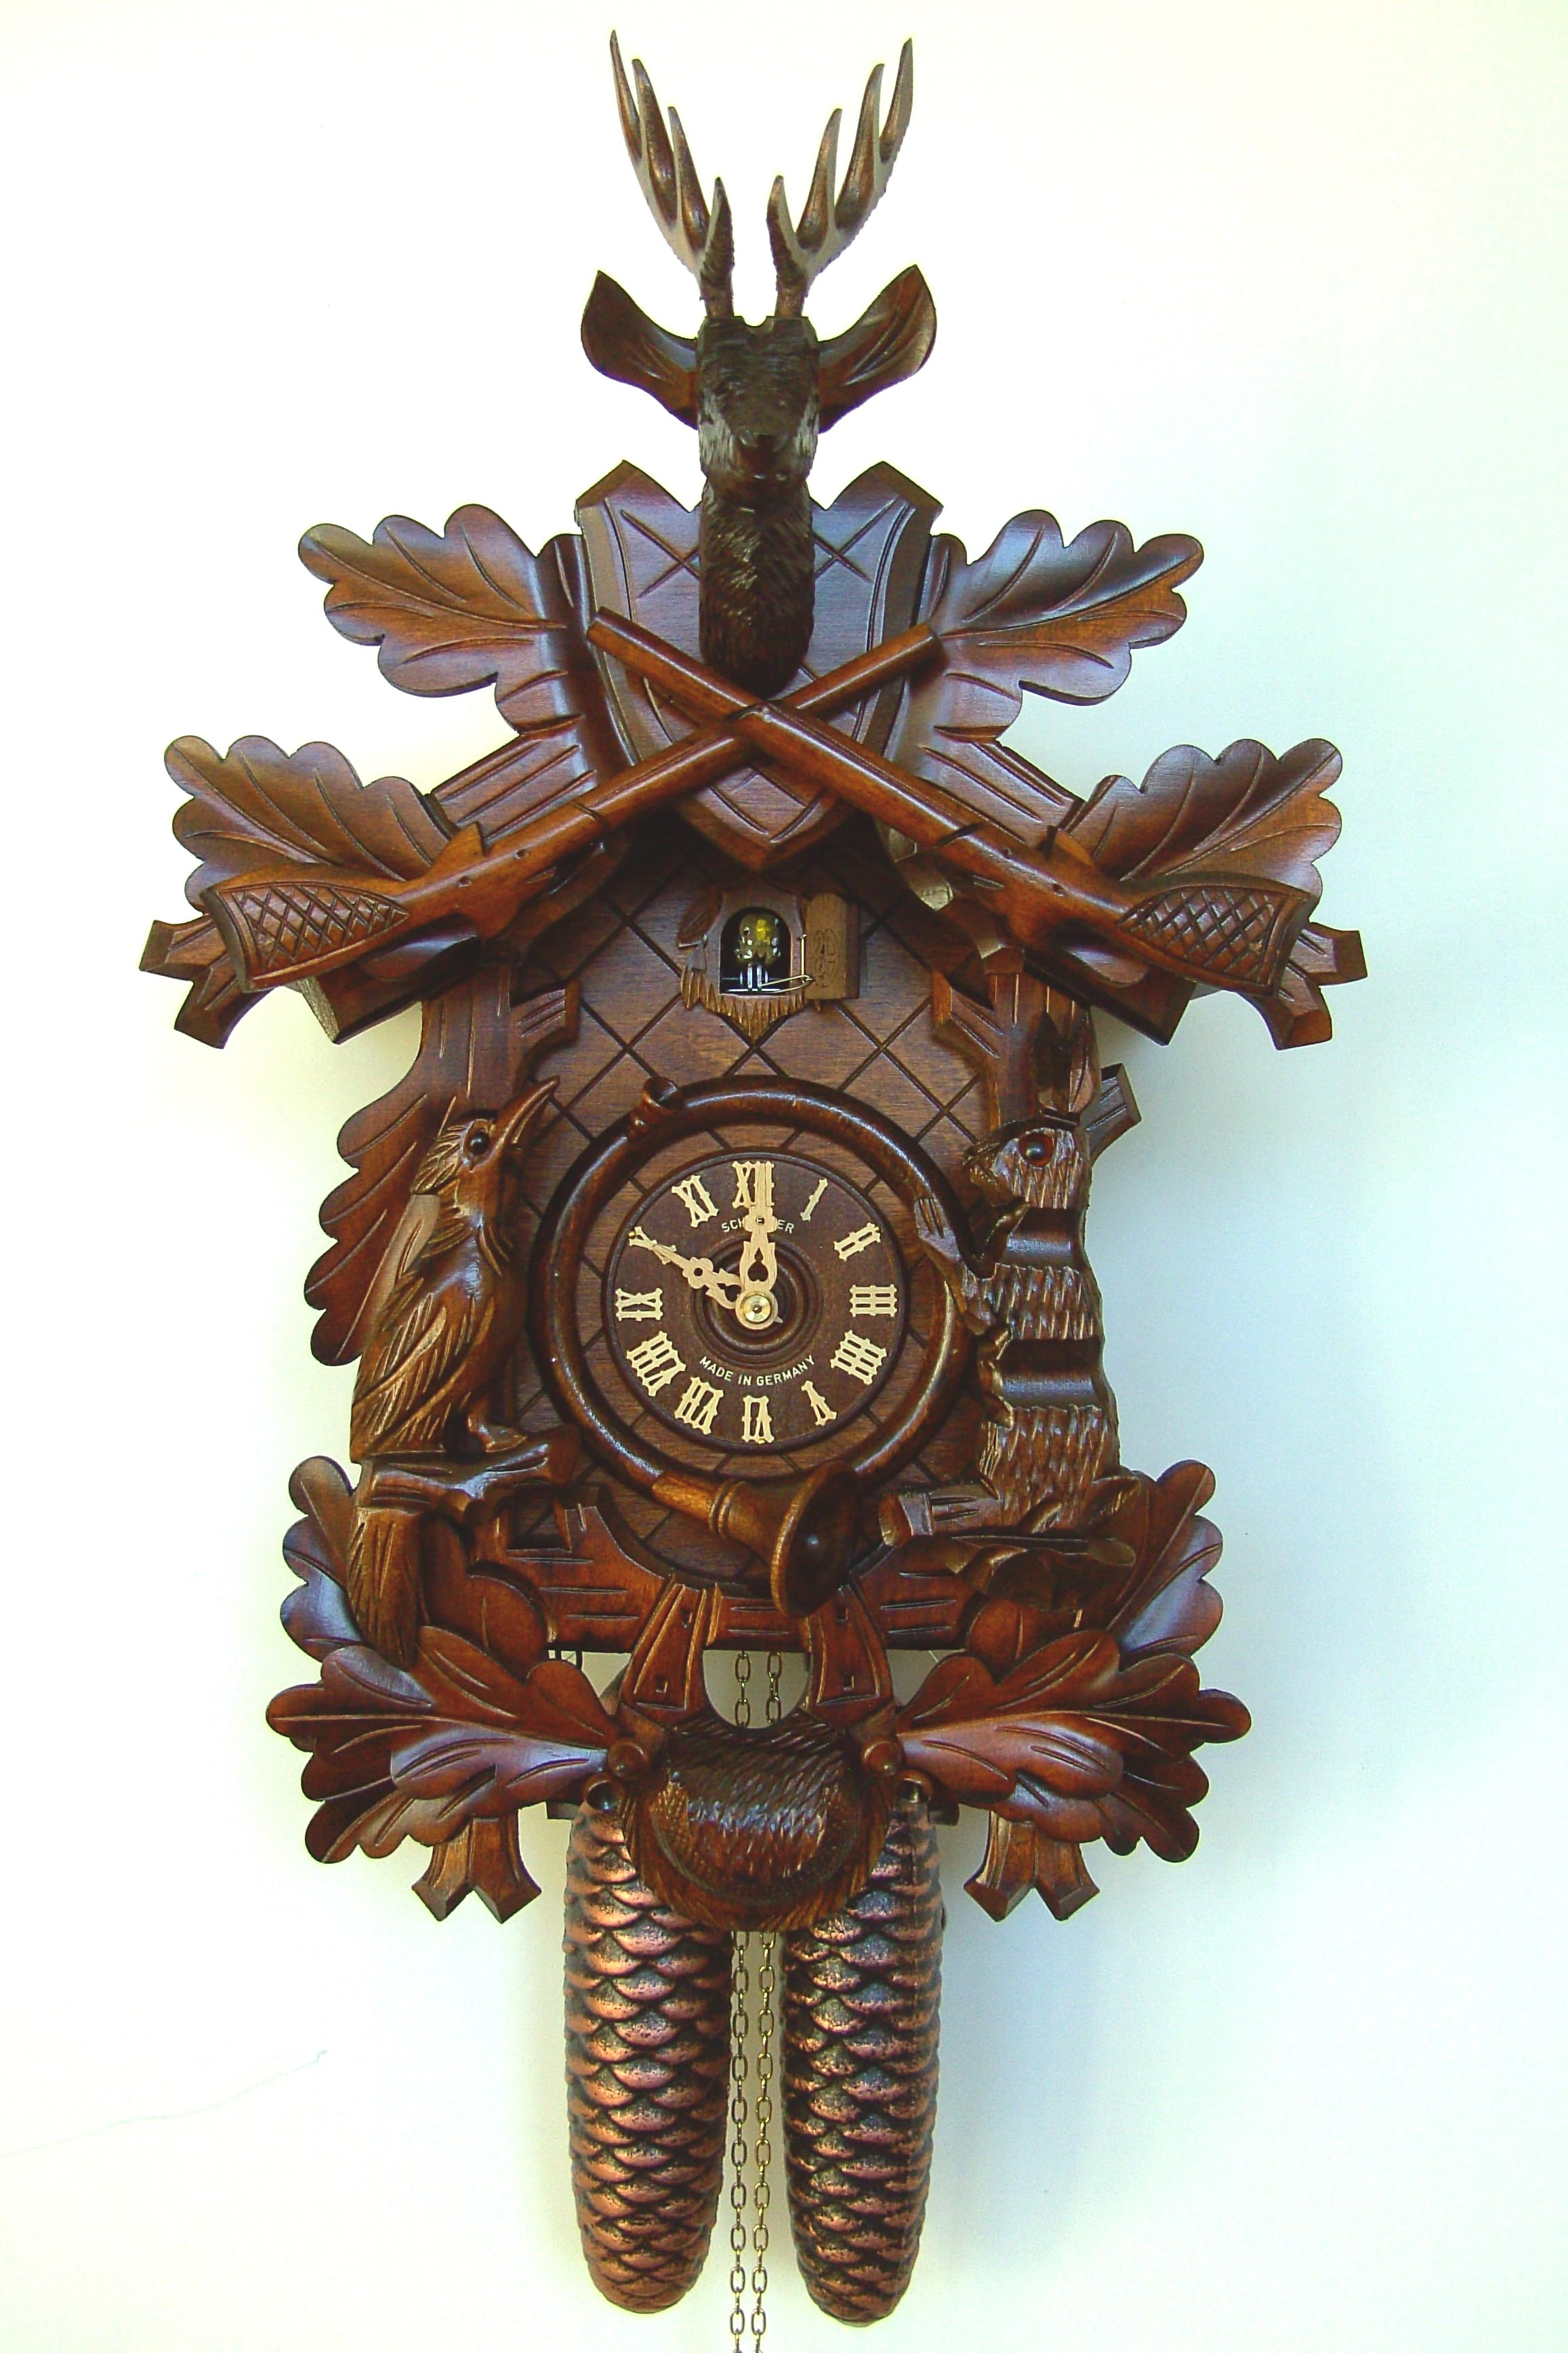 Hunters German Cuckoo Clock from the Black Forest - Grandfather's Clock Gallery & Clinic